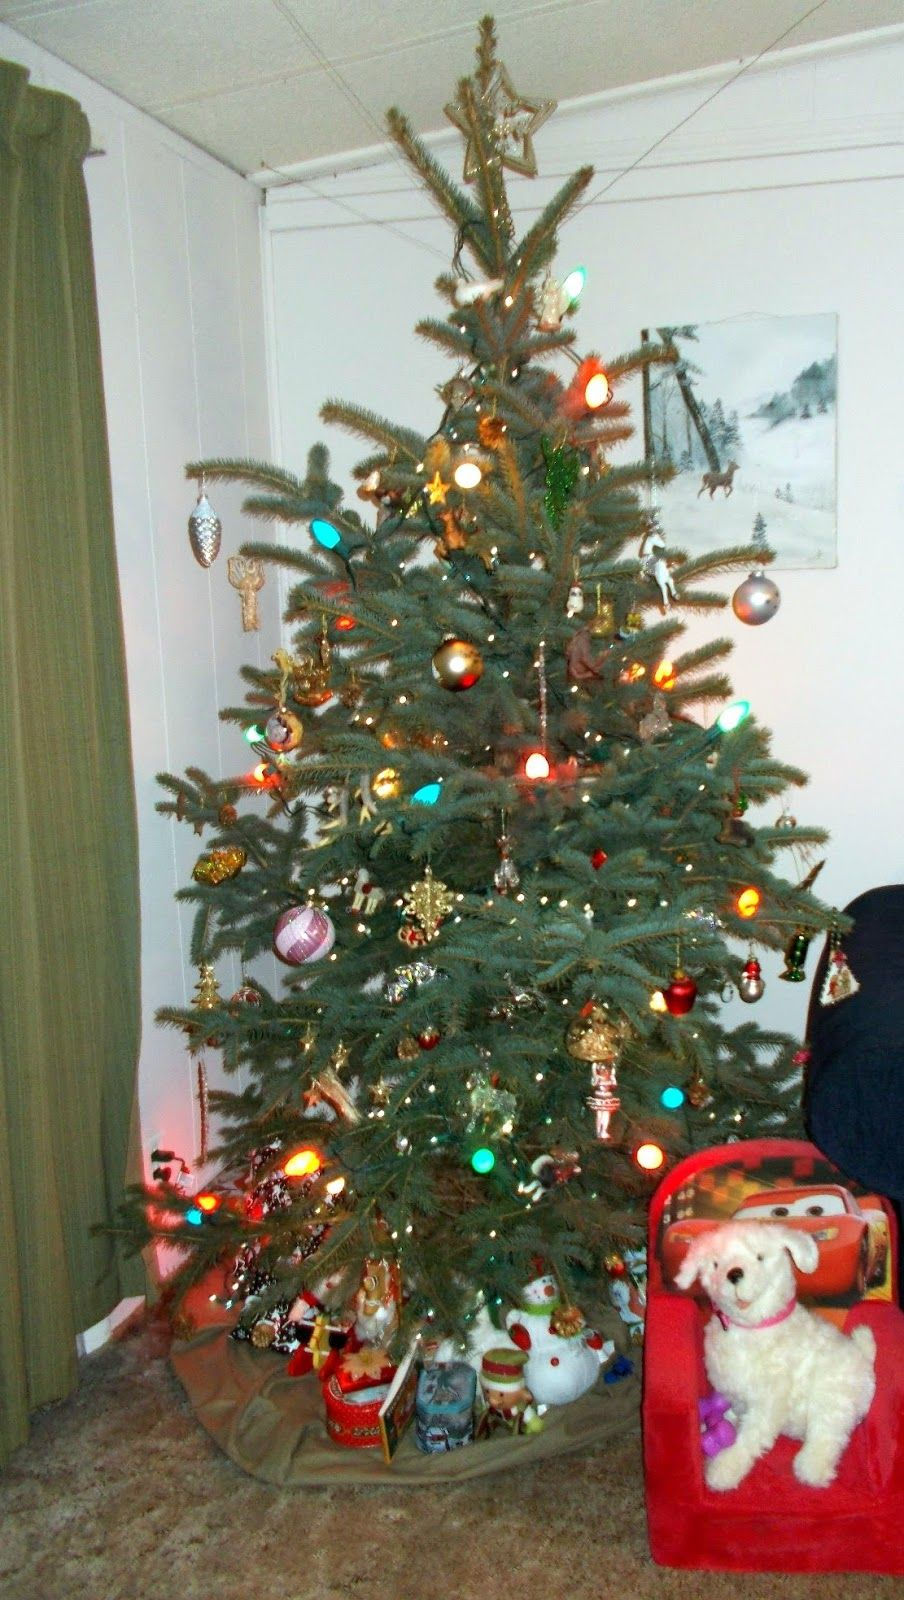 April's Country Life: The Christmas Tree